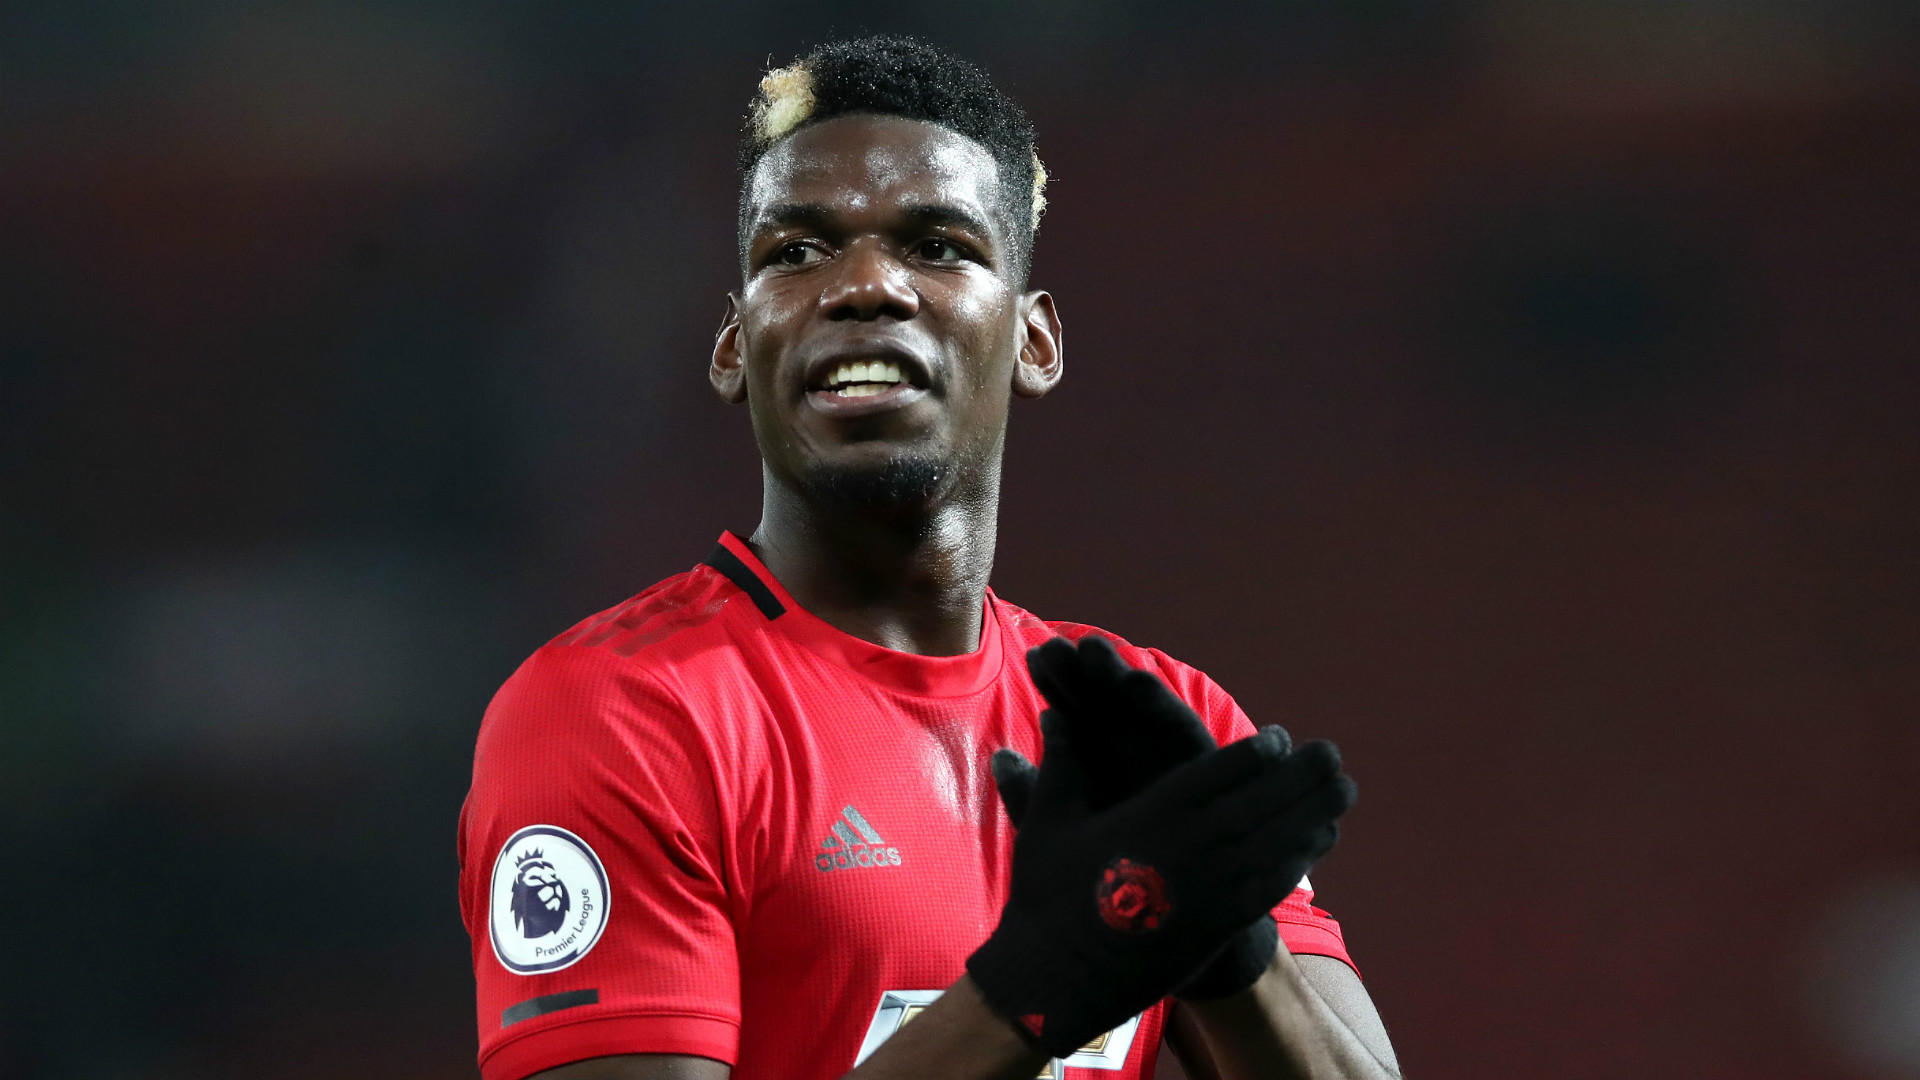 Pogba can be a Man Utd legend, they should build a team around him - Sharpe